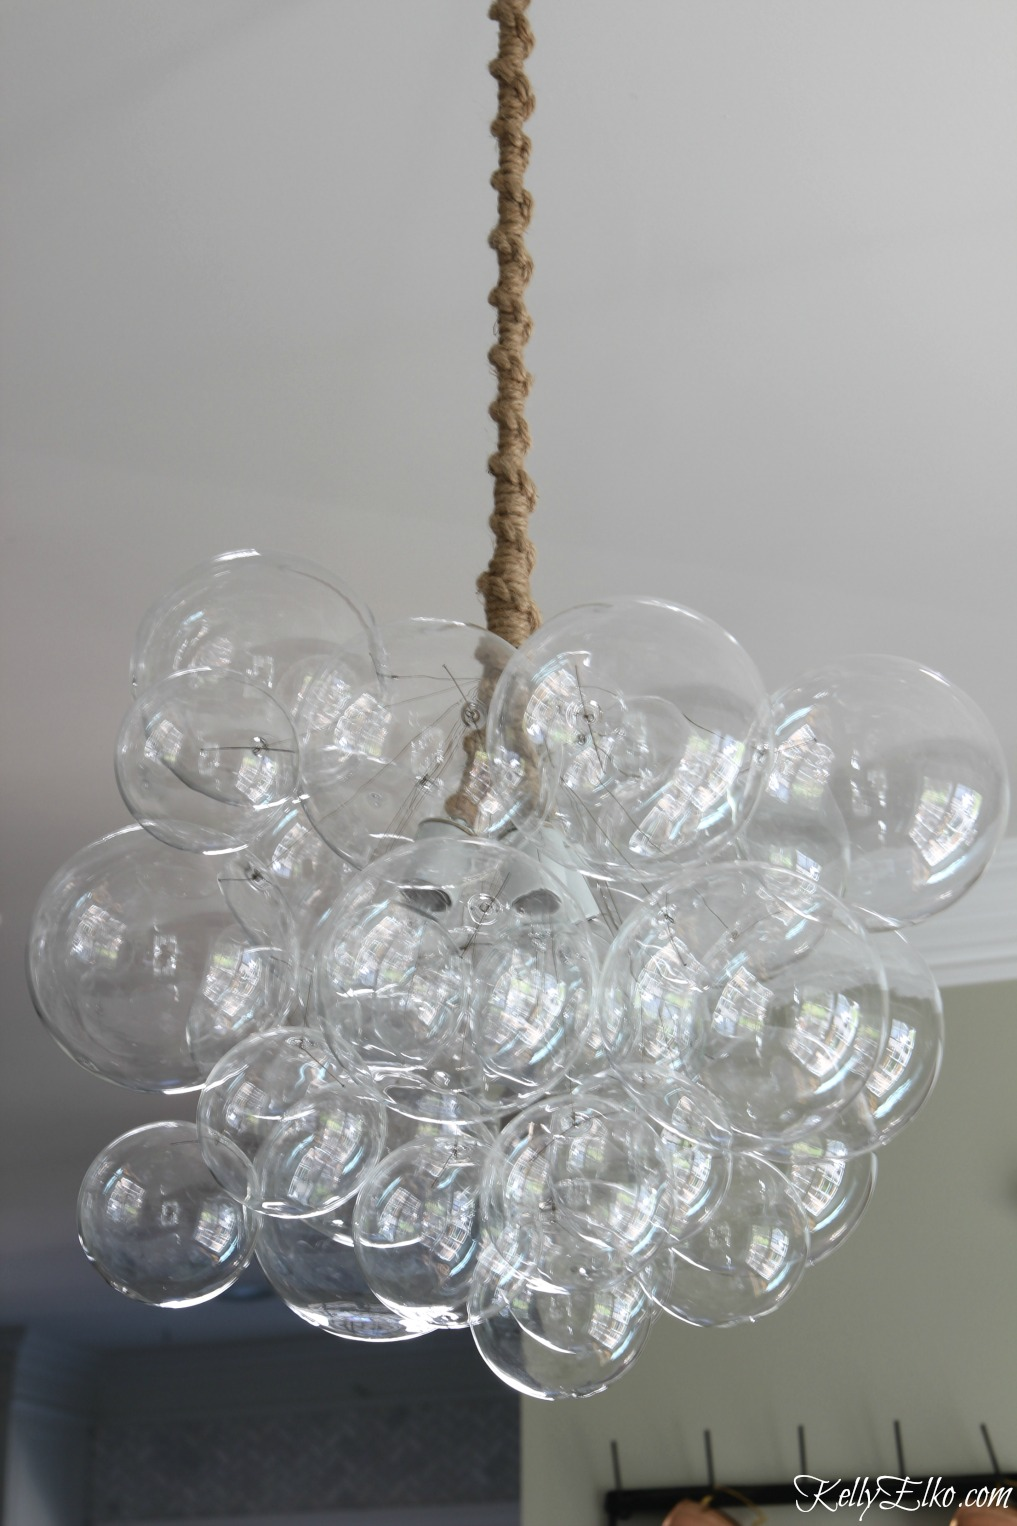 Love this bubble chandelier with jute cord - it's a true work of art kellyelko.com